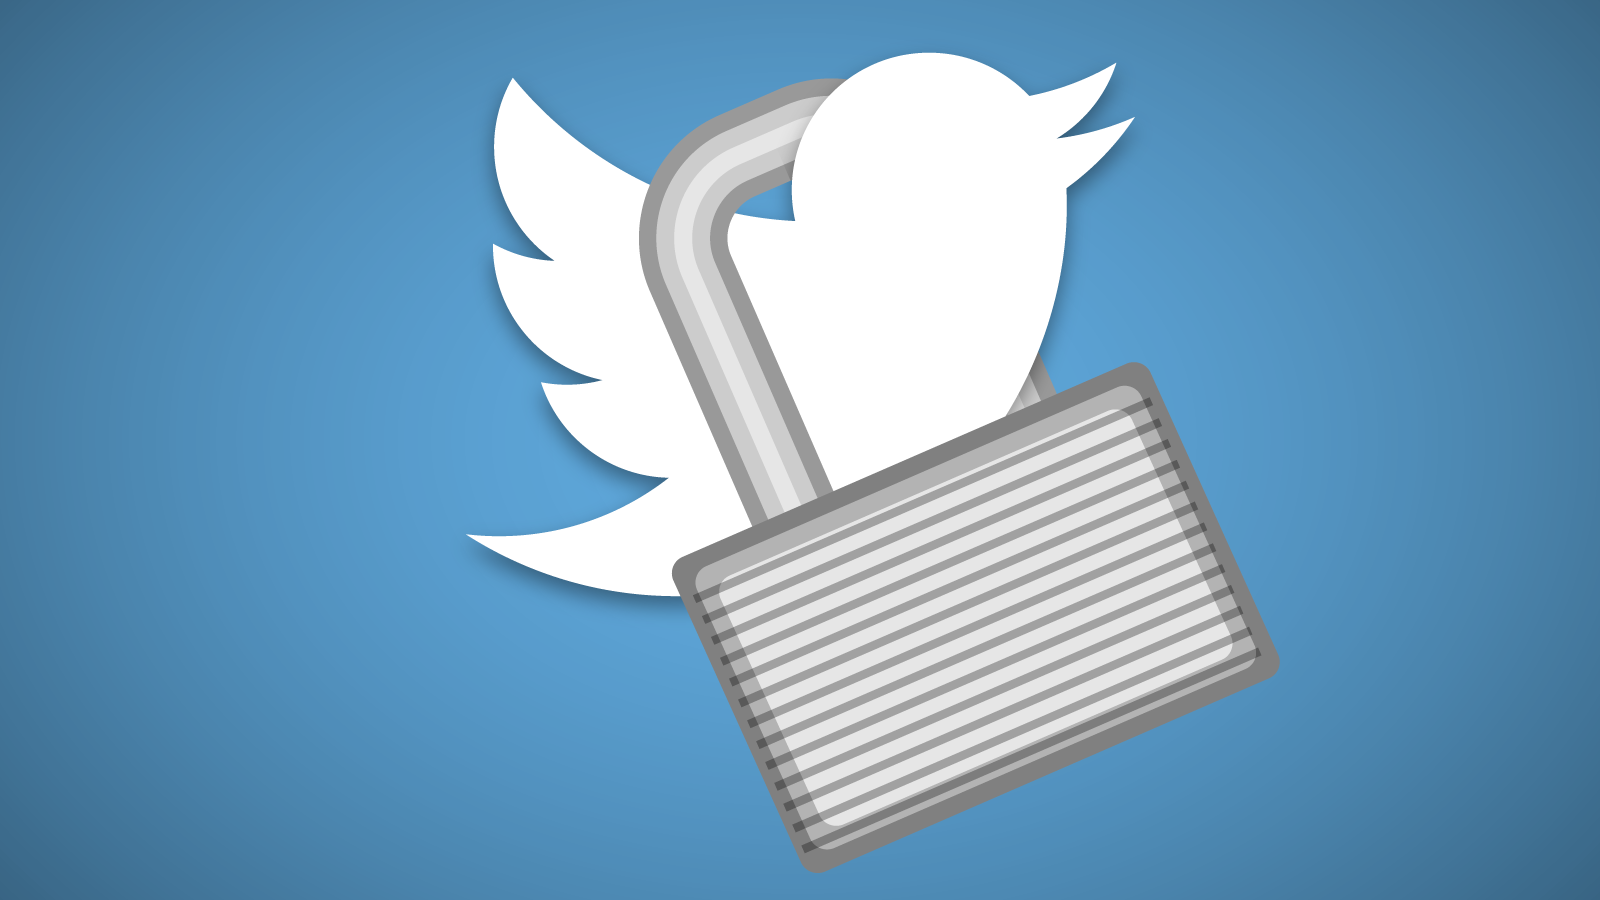 Twitter testing end-to-end encrypted messaging